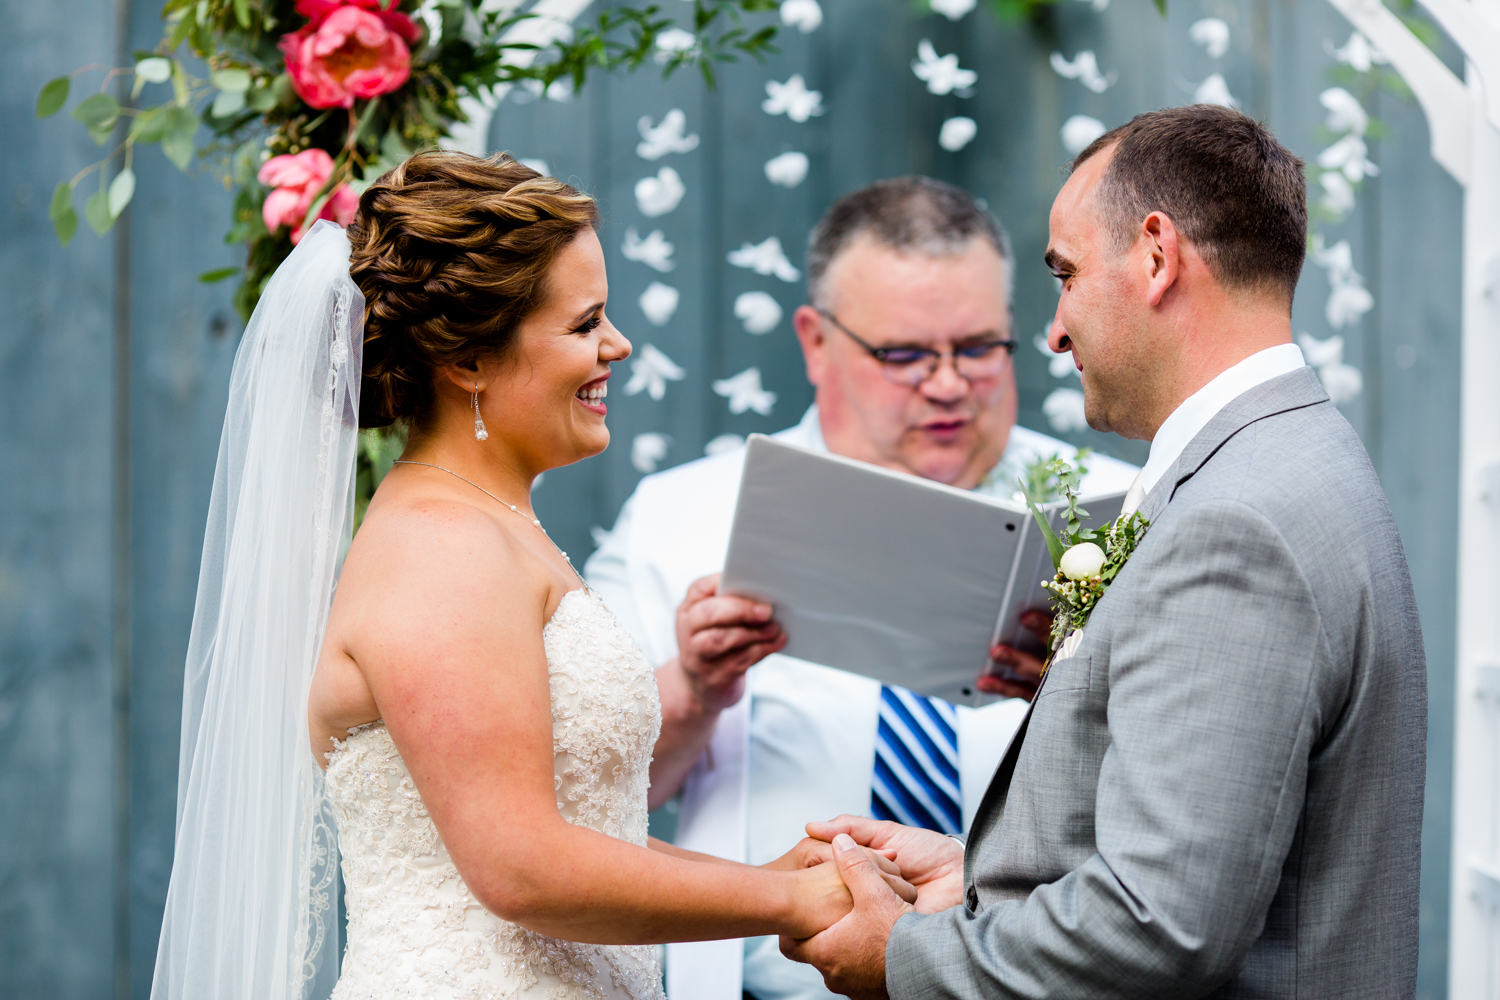 close up of bride and grooms happy faces during ceremony.